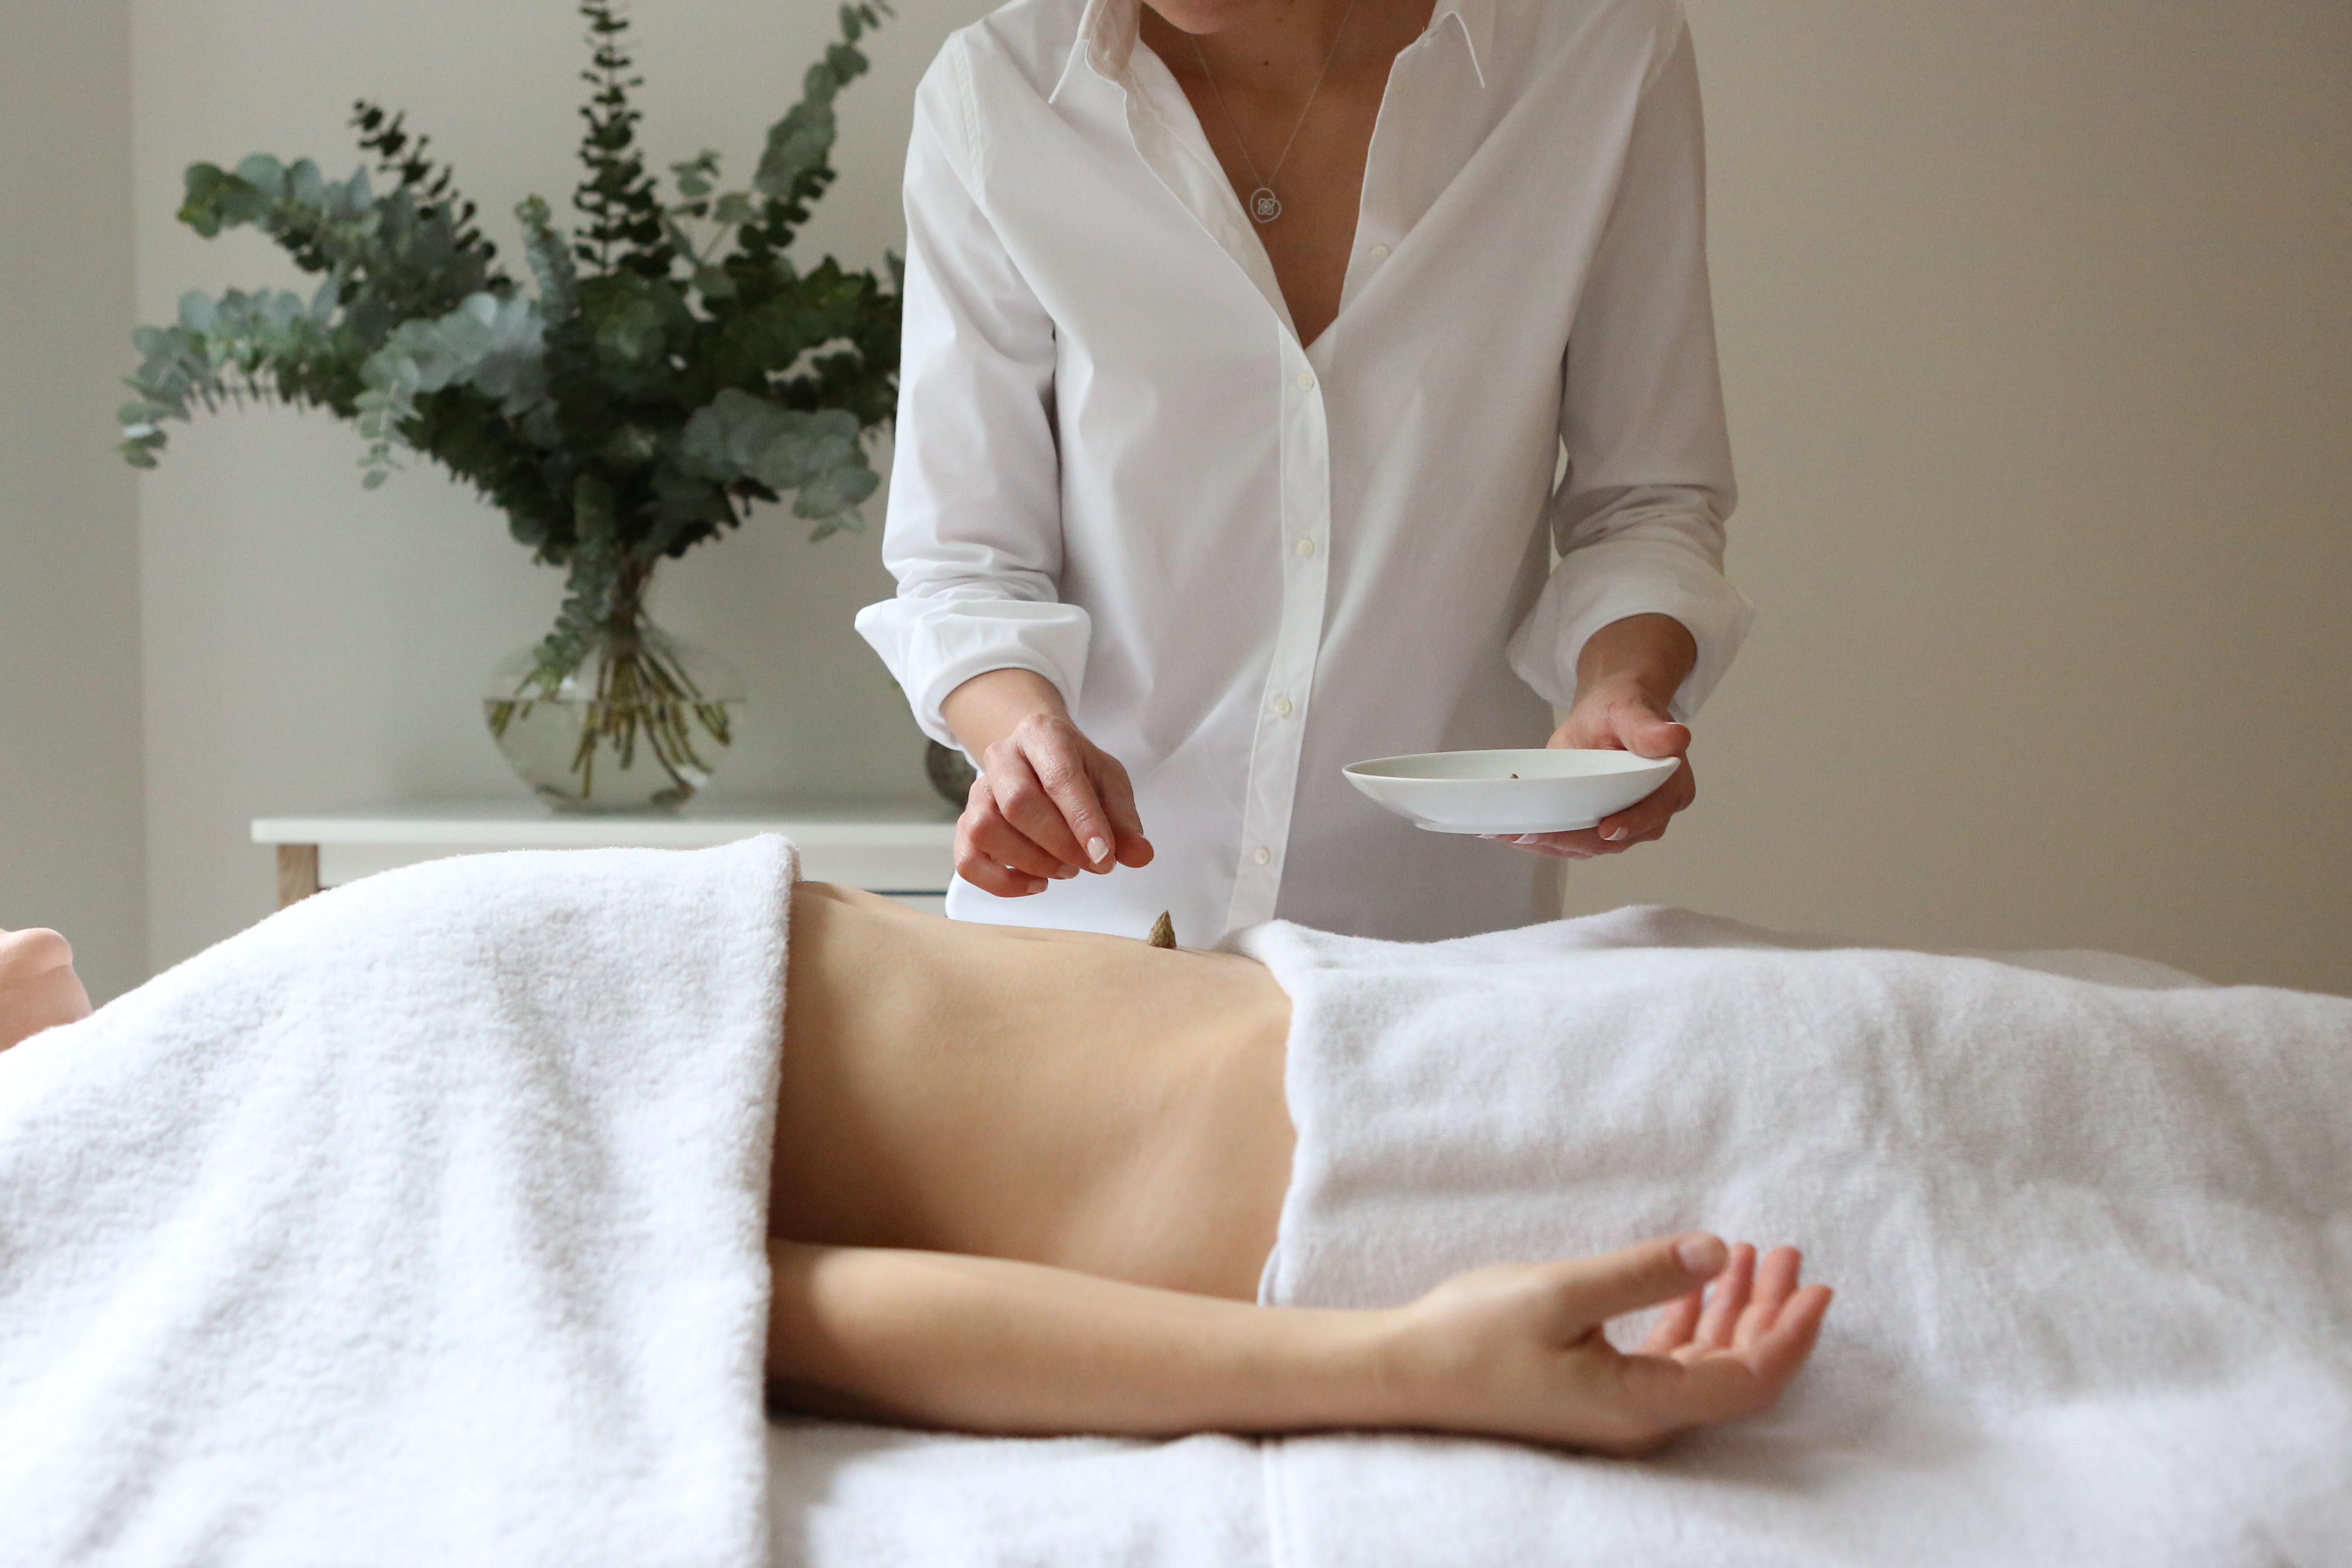 treatment rooms website aromatherapy website business start up photos